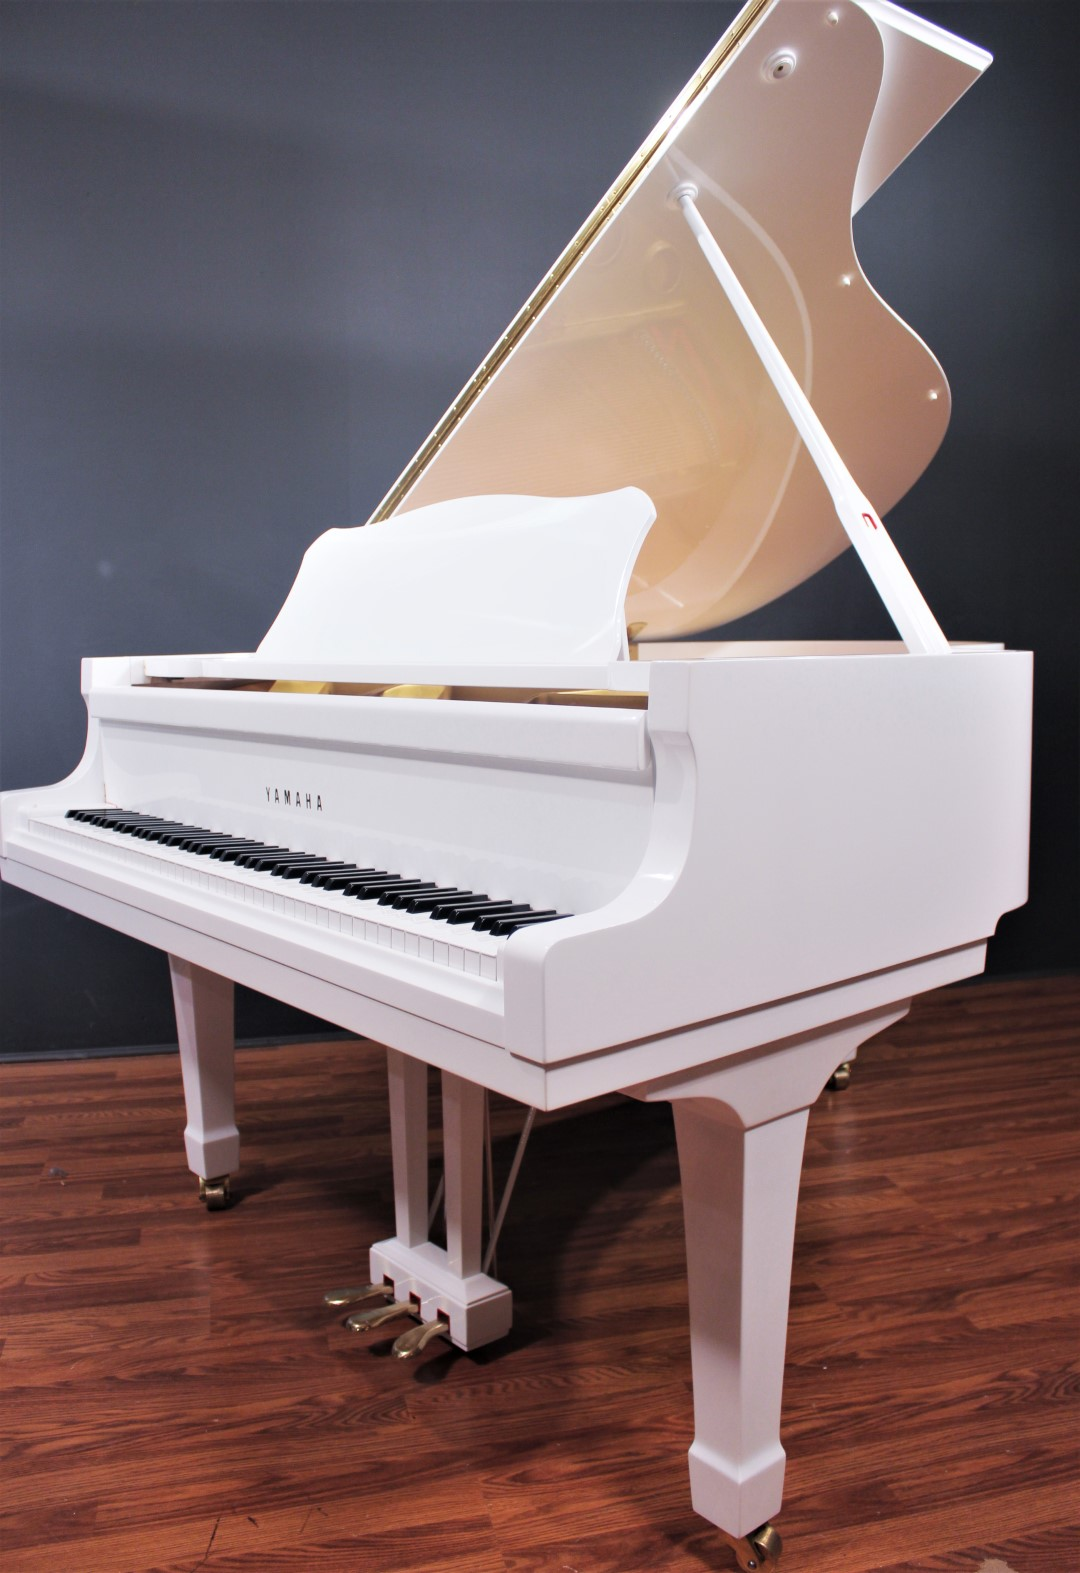 yamaha c3 6 39 1 39 39 grand piano polished white grand pianos. Black Bedroom Furniture Sets. Home Design Ideas